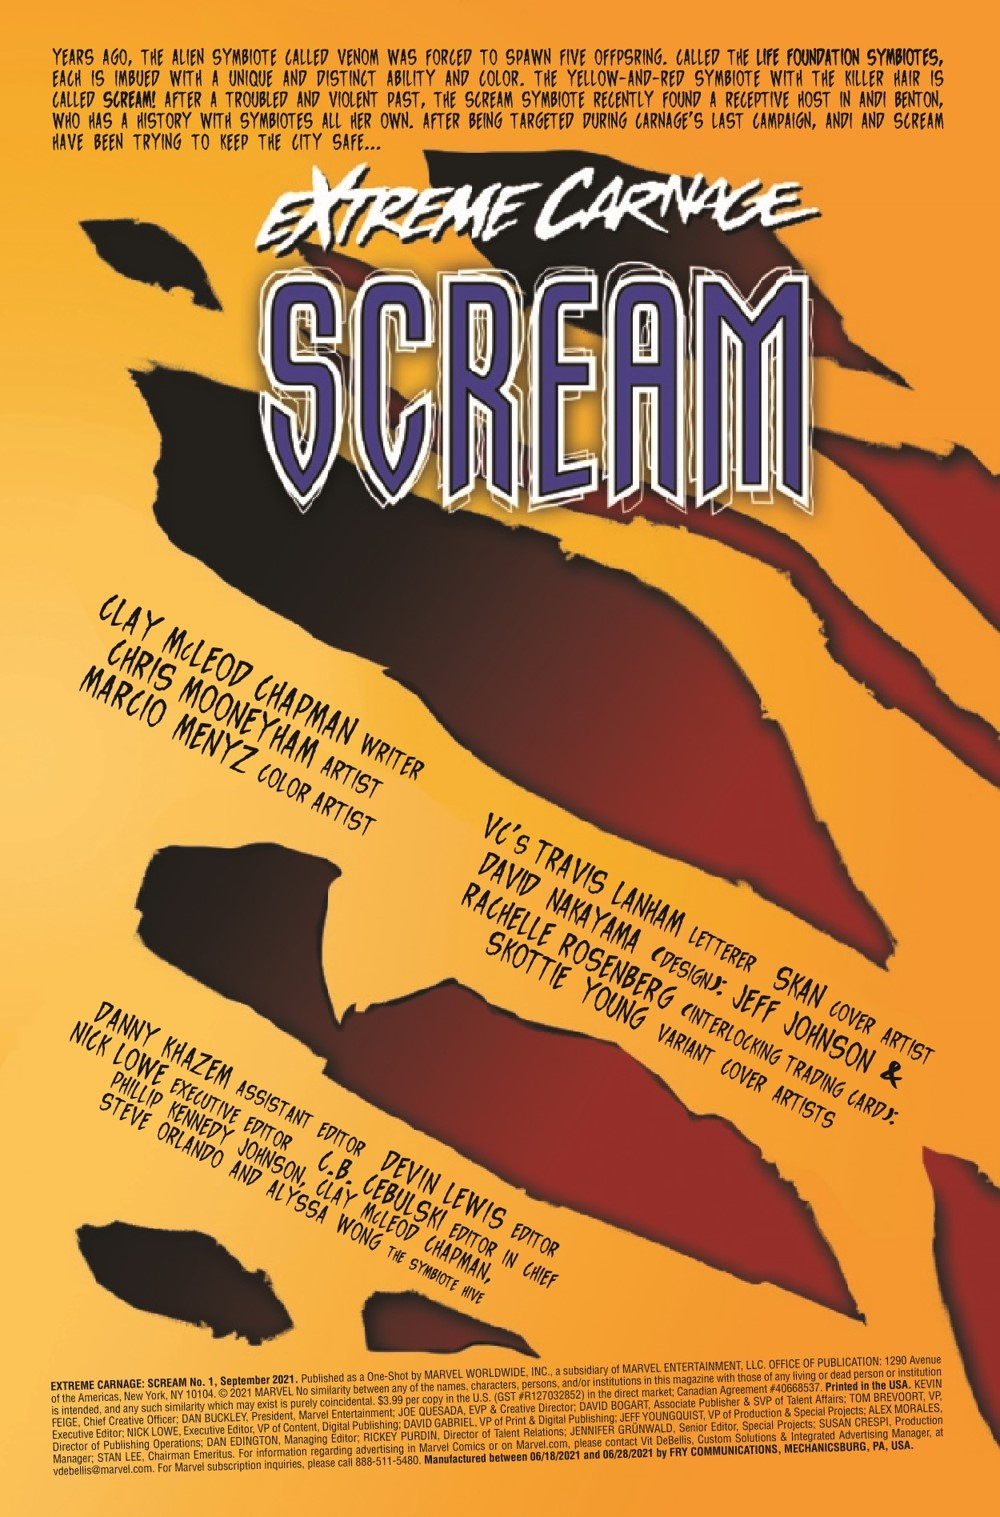 EXTCARNSC2021001_Preview-2 ComicList Previews: EXTREME CARNAGE SCREAM #1